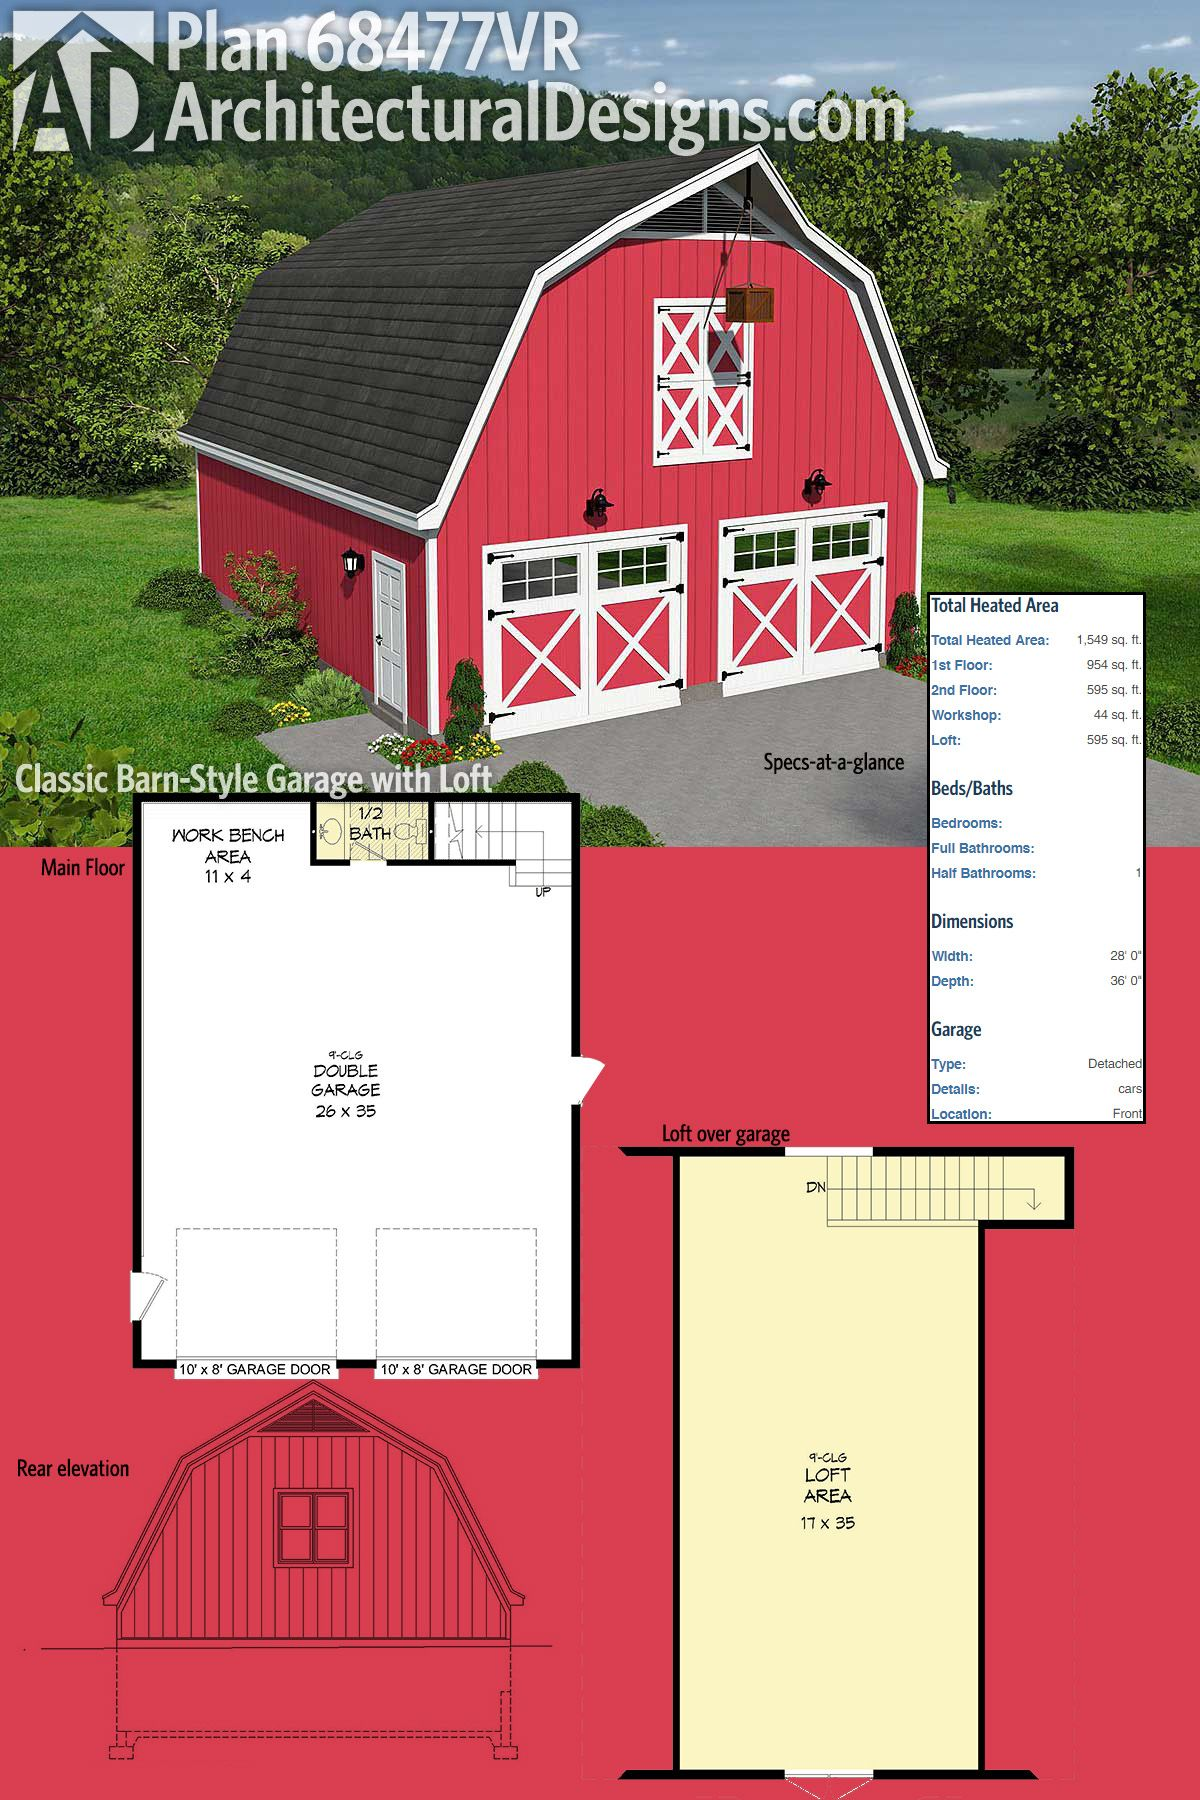 Plan 68477VR: Clic Barn-Style Garage with Loft | Garage ... on barn house plans with loft, horseshoe style house plans, tiny house plans, pole building house floor plans, barn guest house plans, ranch house plans, barn house interior, simple barn house plans, metal building house plans, cabin with gambrel roof house plans, barn house open floor plans, 3500 sq ft 2 story house plans, long small house plans, l-shaped house plans, barn inspired house plans, metal barn house plans, 5 bedroom barn house plans, 5-bedroom affordable house plans, barn homes,